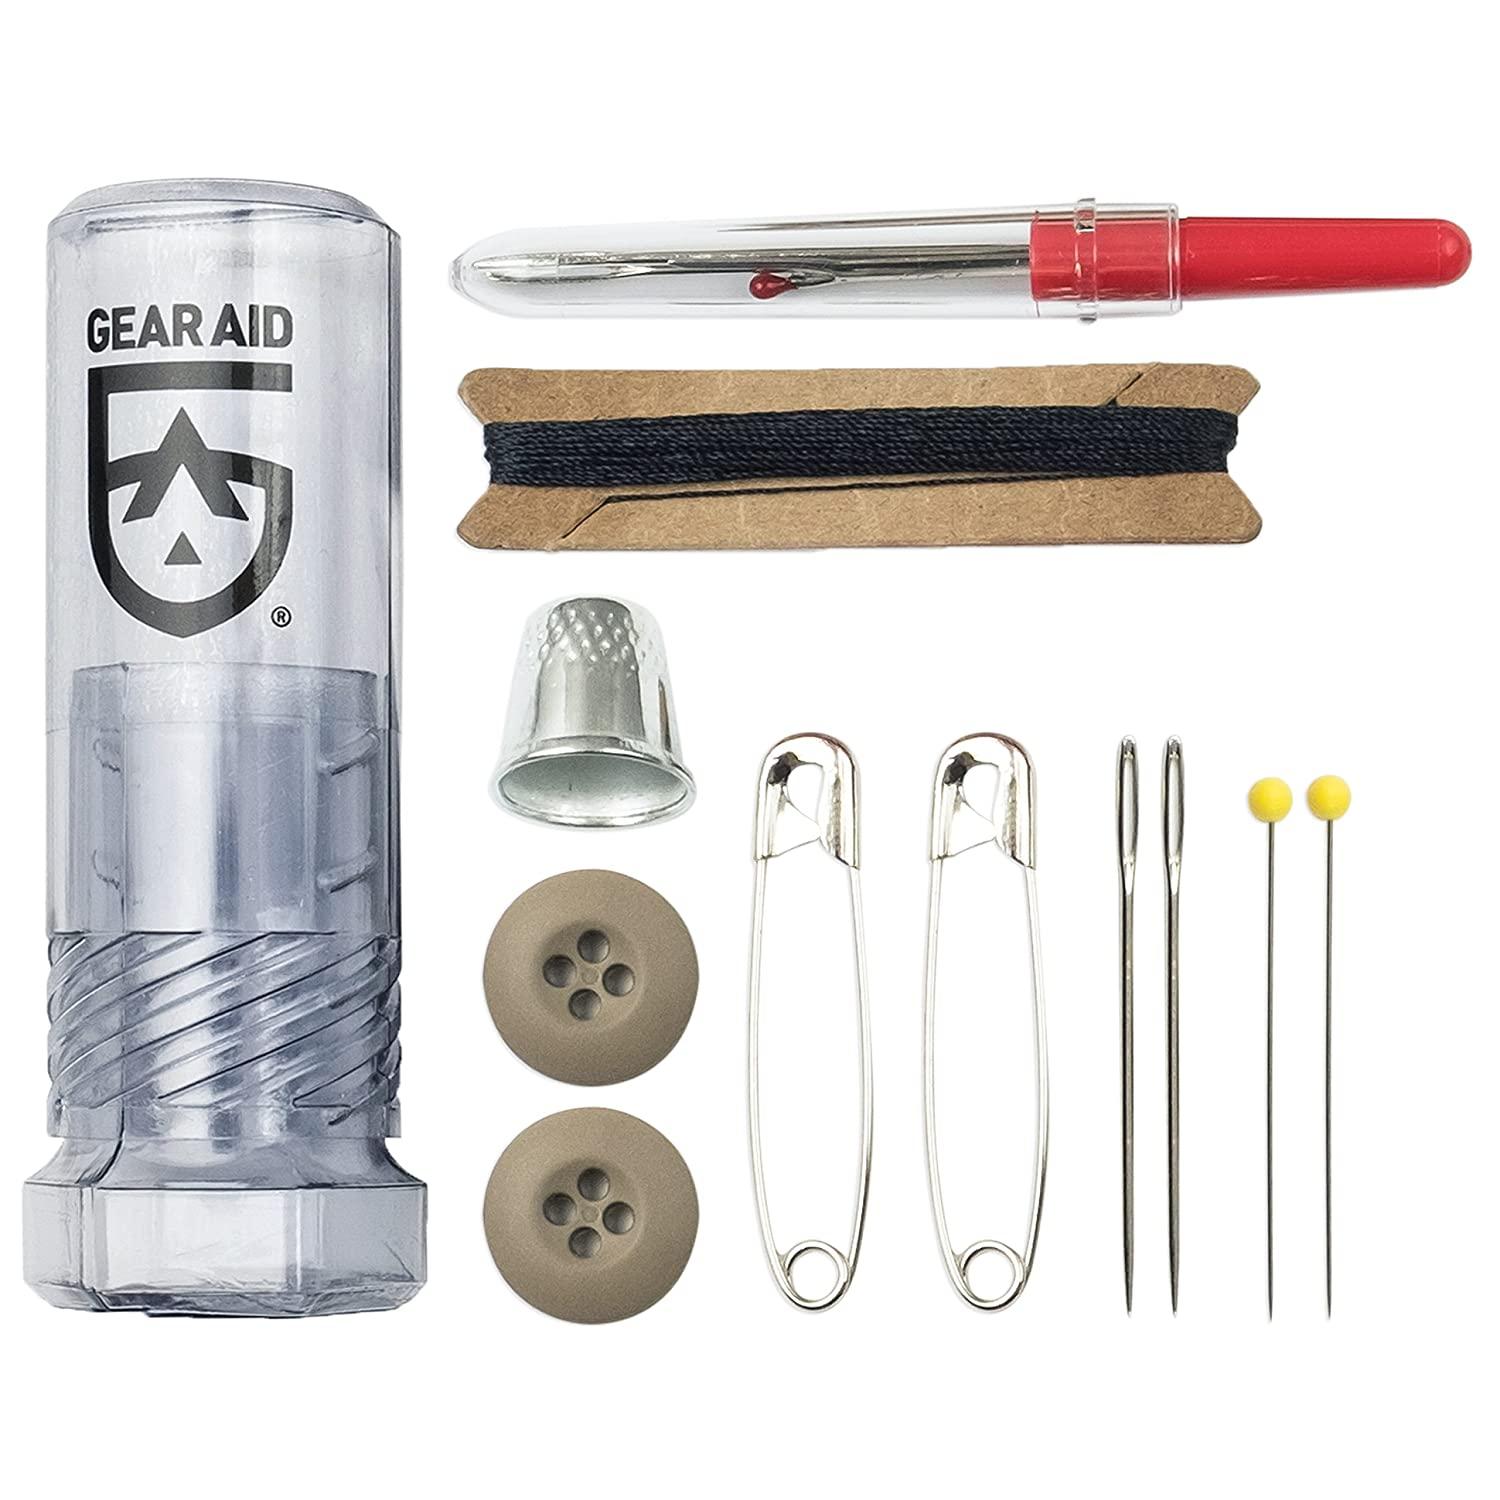 Gear Aid McNett Sewing Kit Safety Pins Buttons and Seam Ripper Dreme Corp MCN80051-BRK